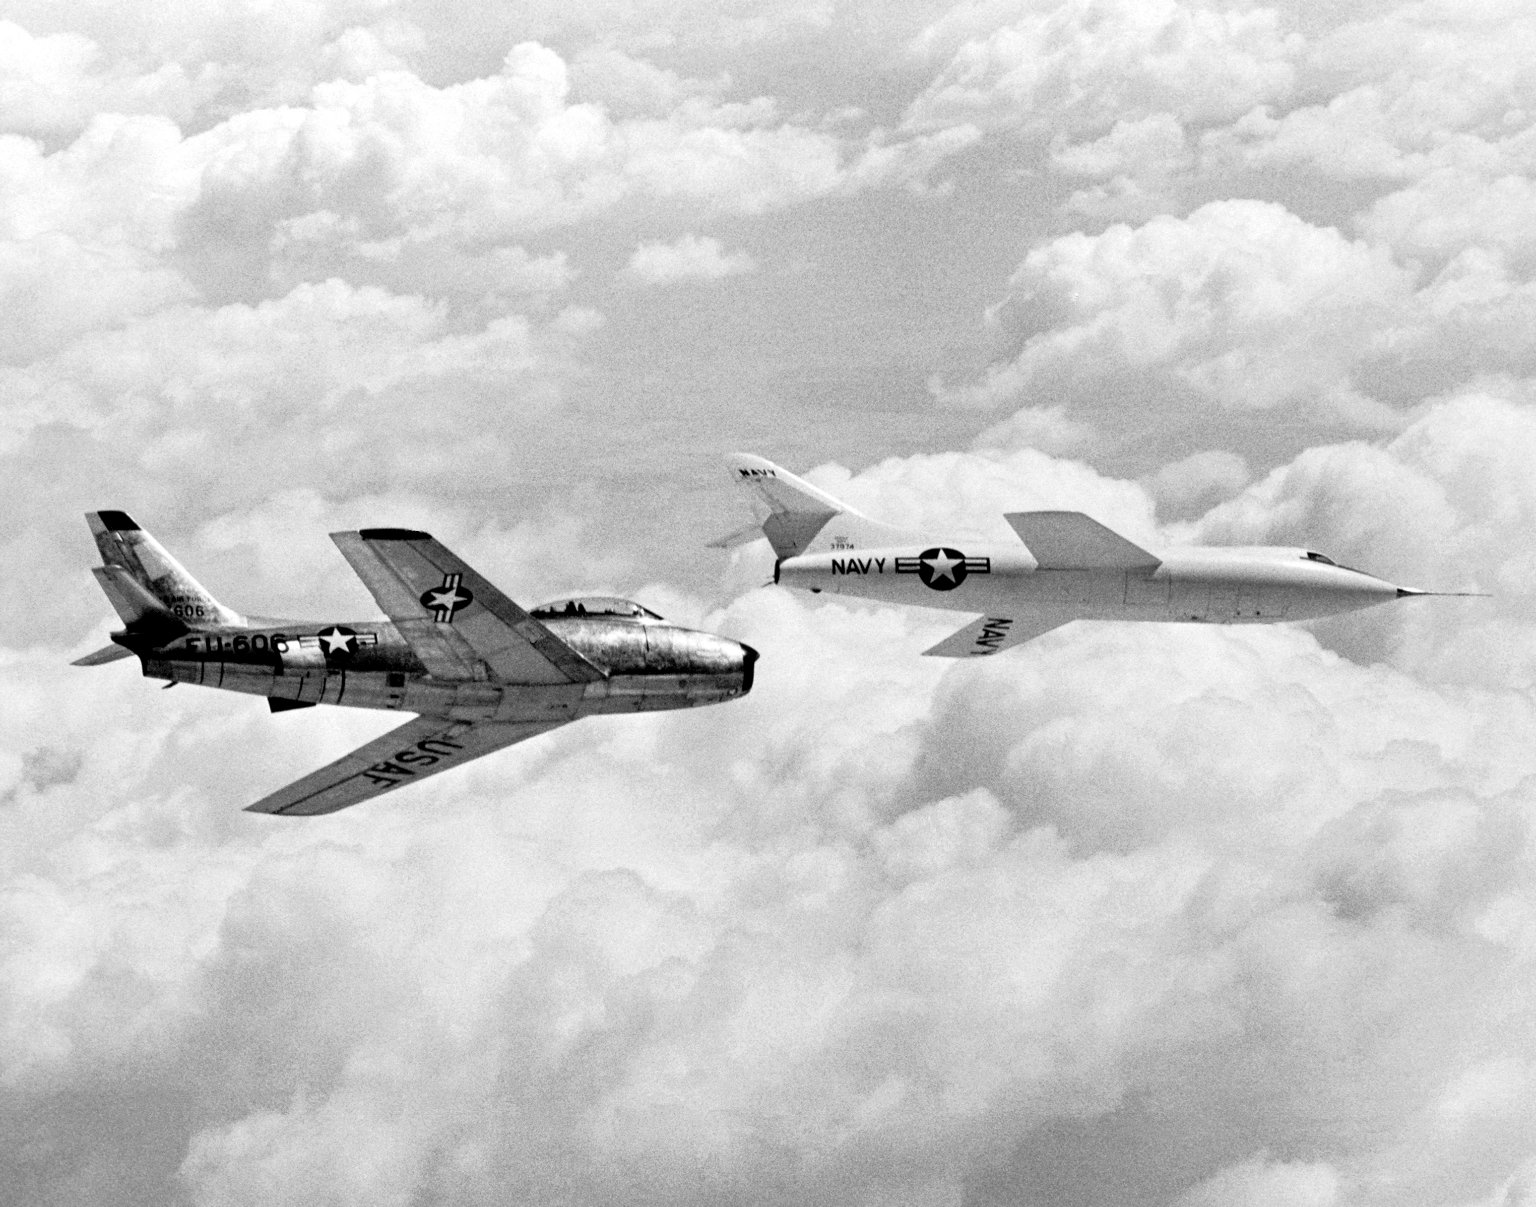 Skyrocket In Flight With F-86 Chase Plane